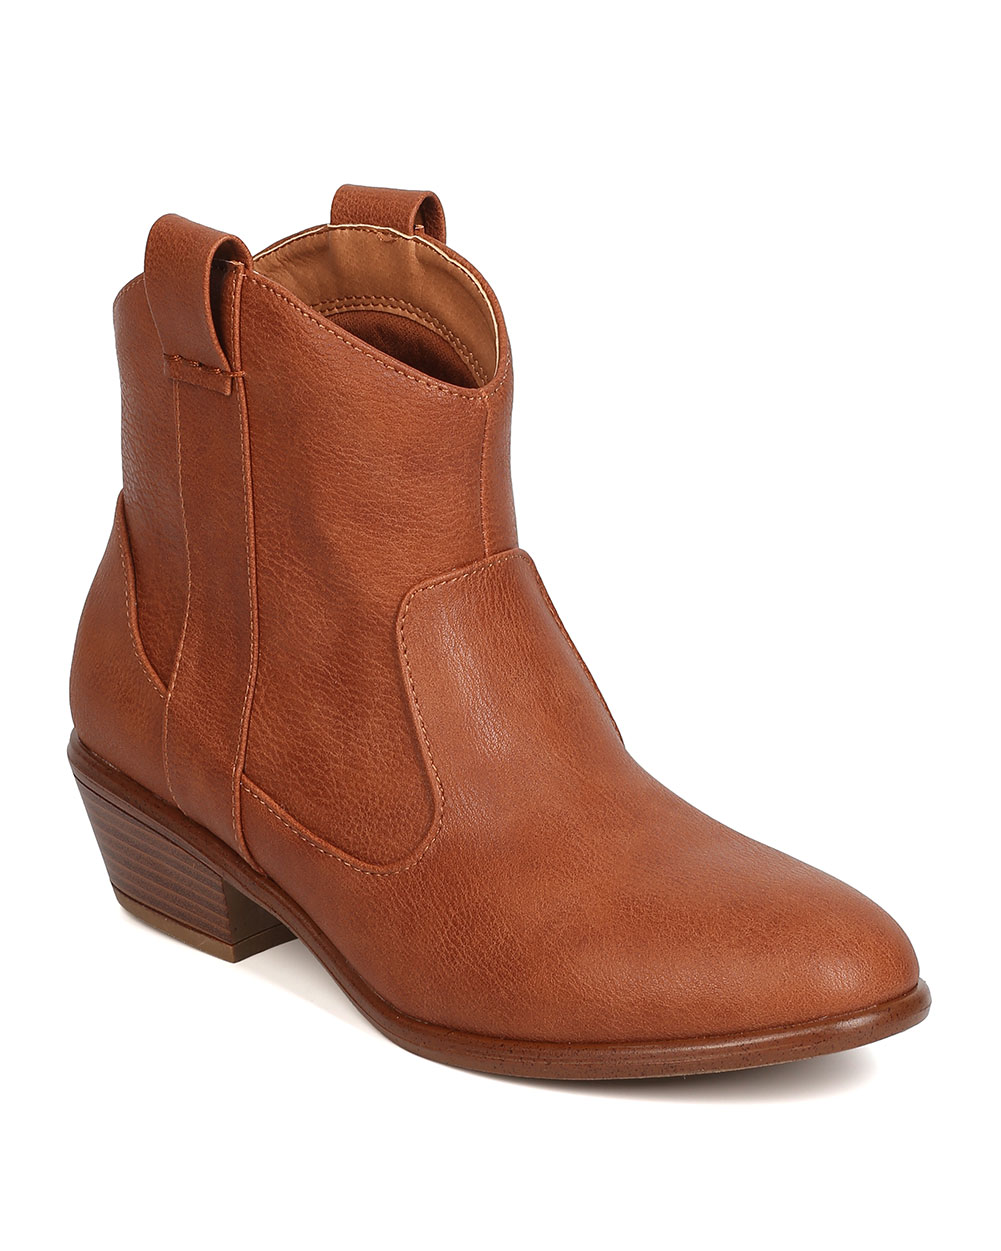 Women Leatherette Cowboy Bootie - Casual Festive Rodeo - Western Ankle Boot - GC78 by